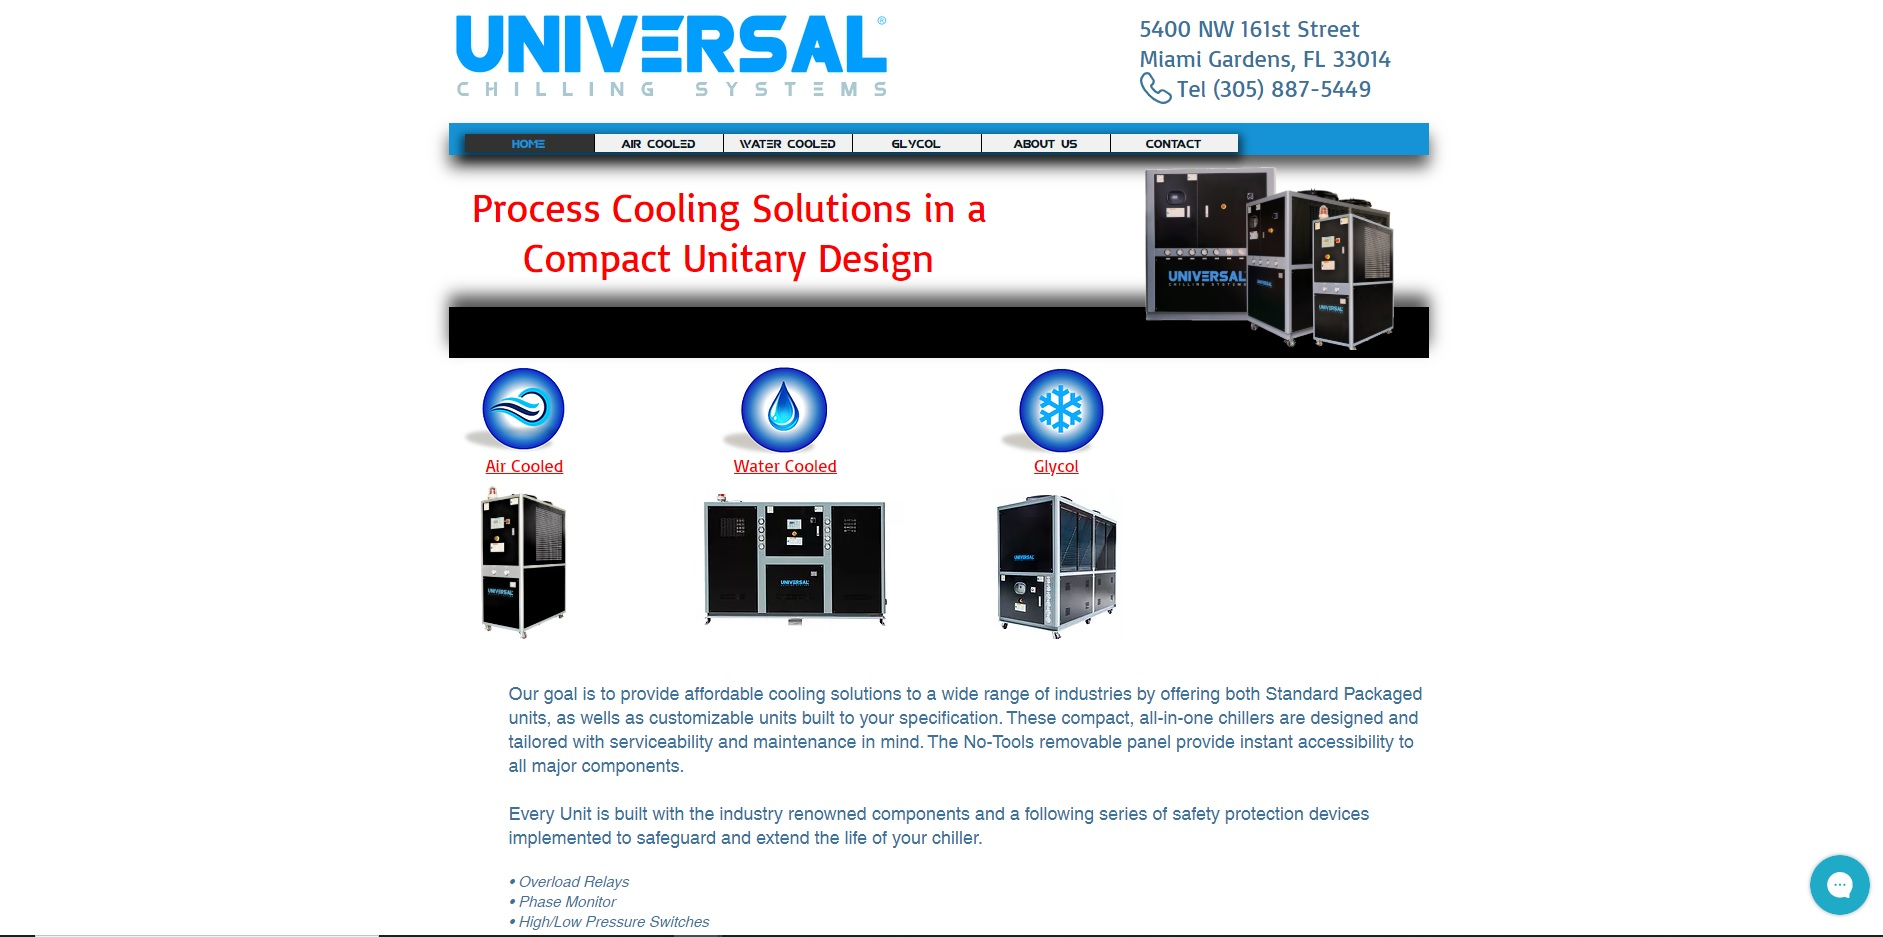 Universal Chilling Systems